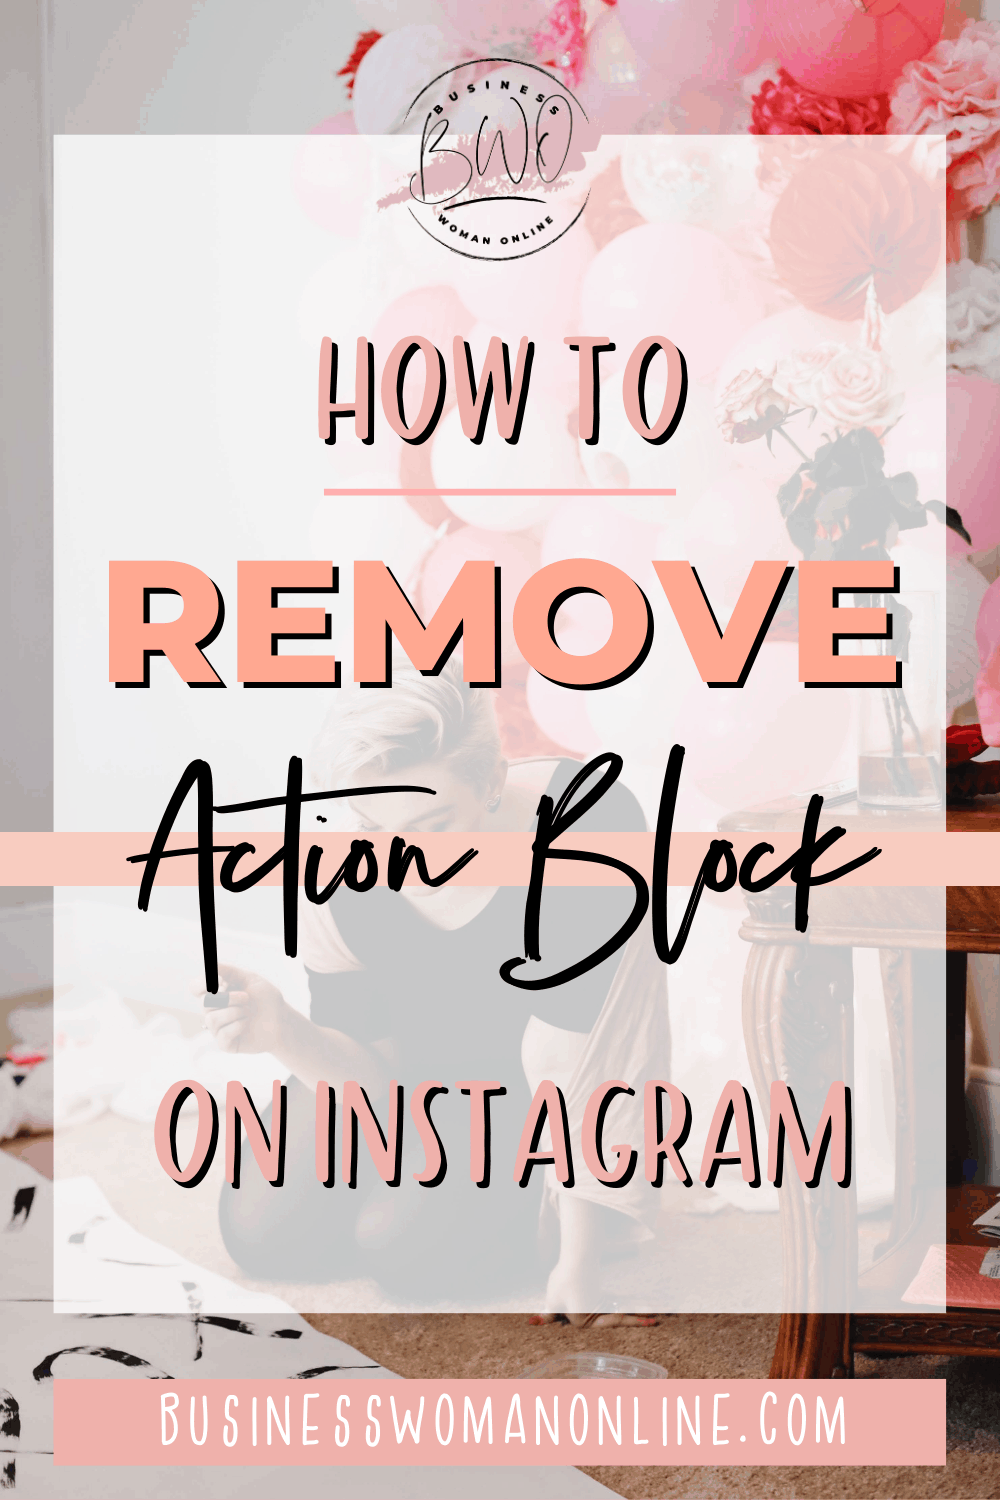 How to remove action block on instagram